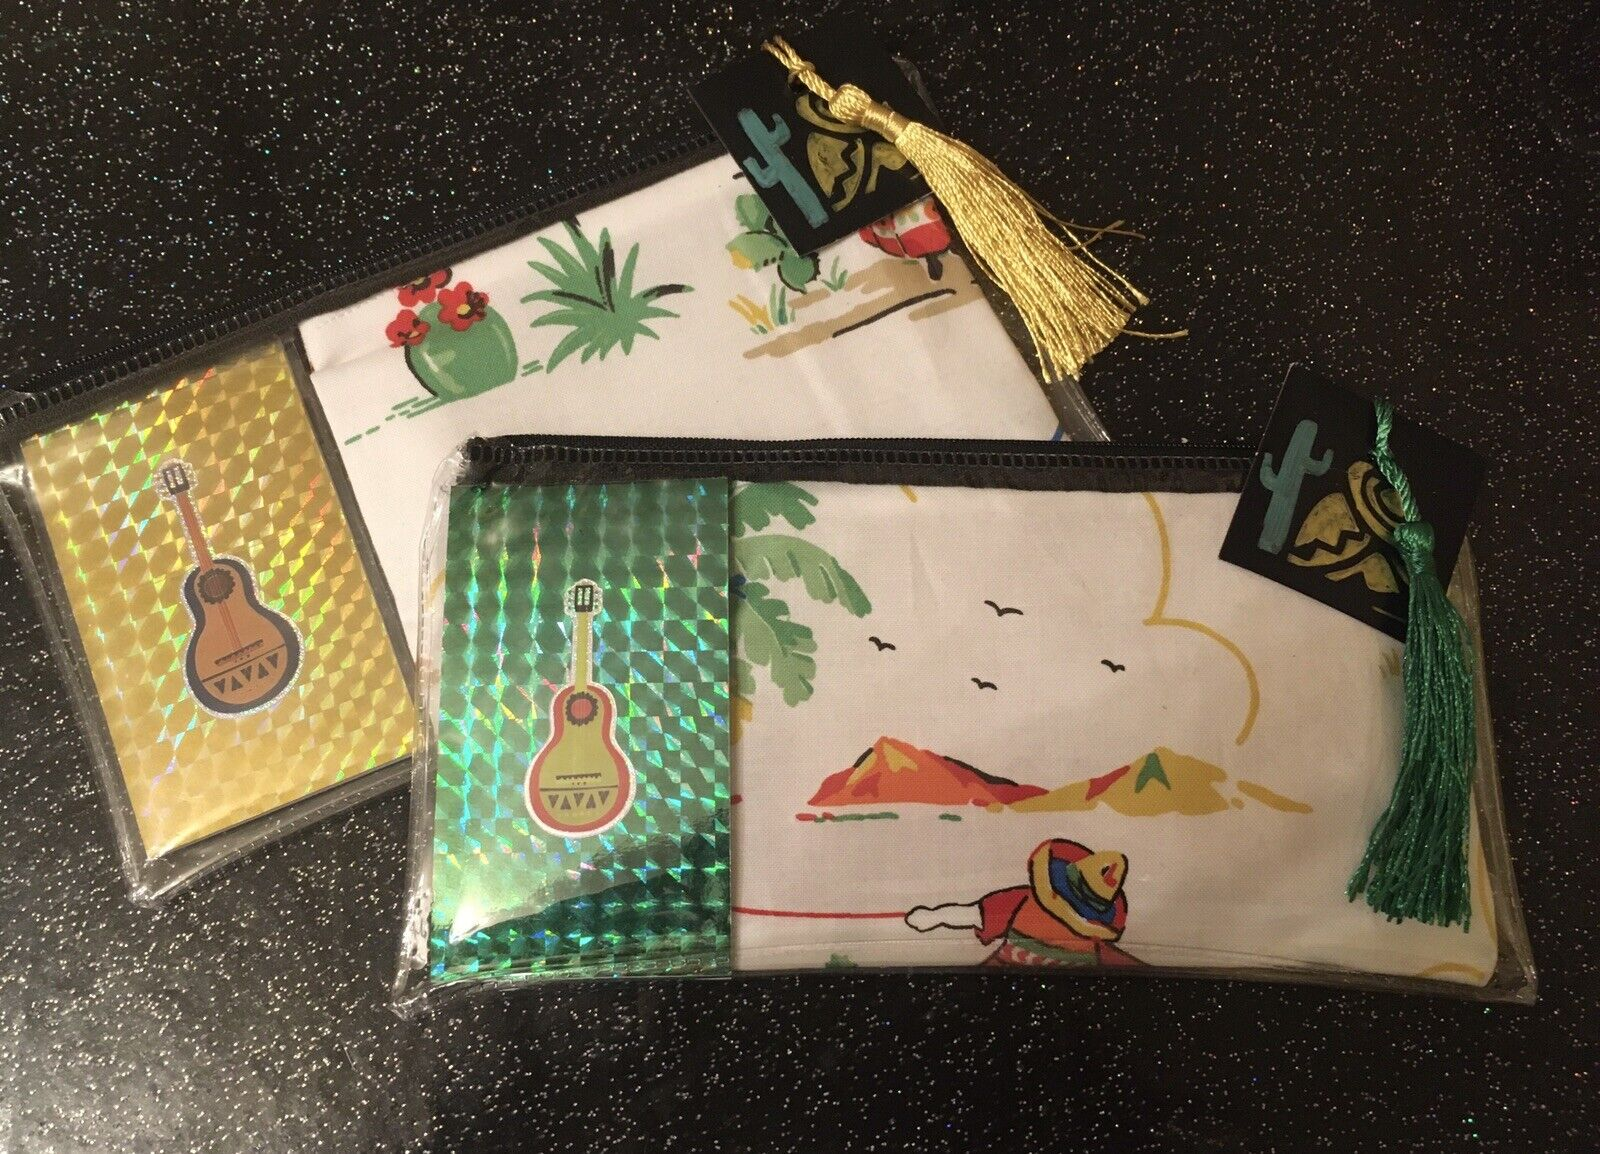 Retro Mexican Scene Guitar Cactus Notebook +Cosmetic Bag In Pouch 3pc Gift Set